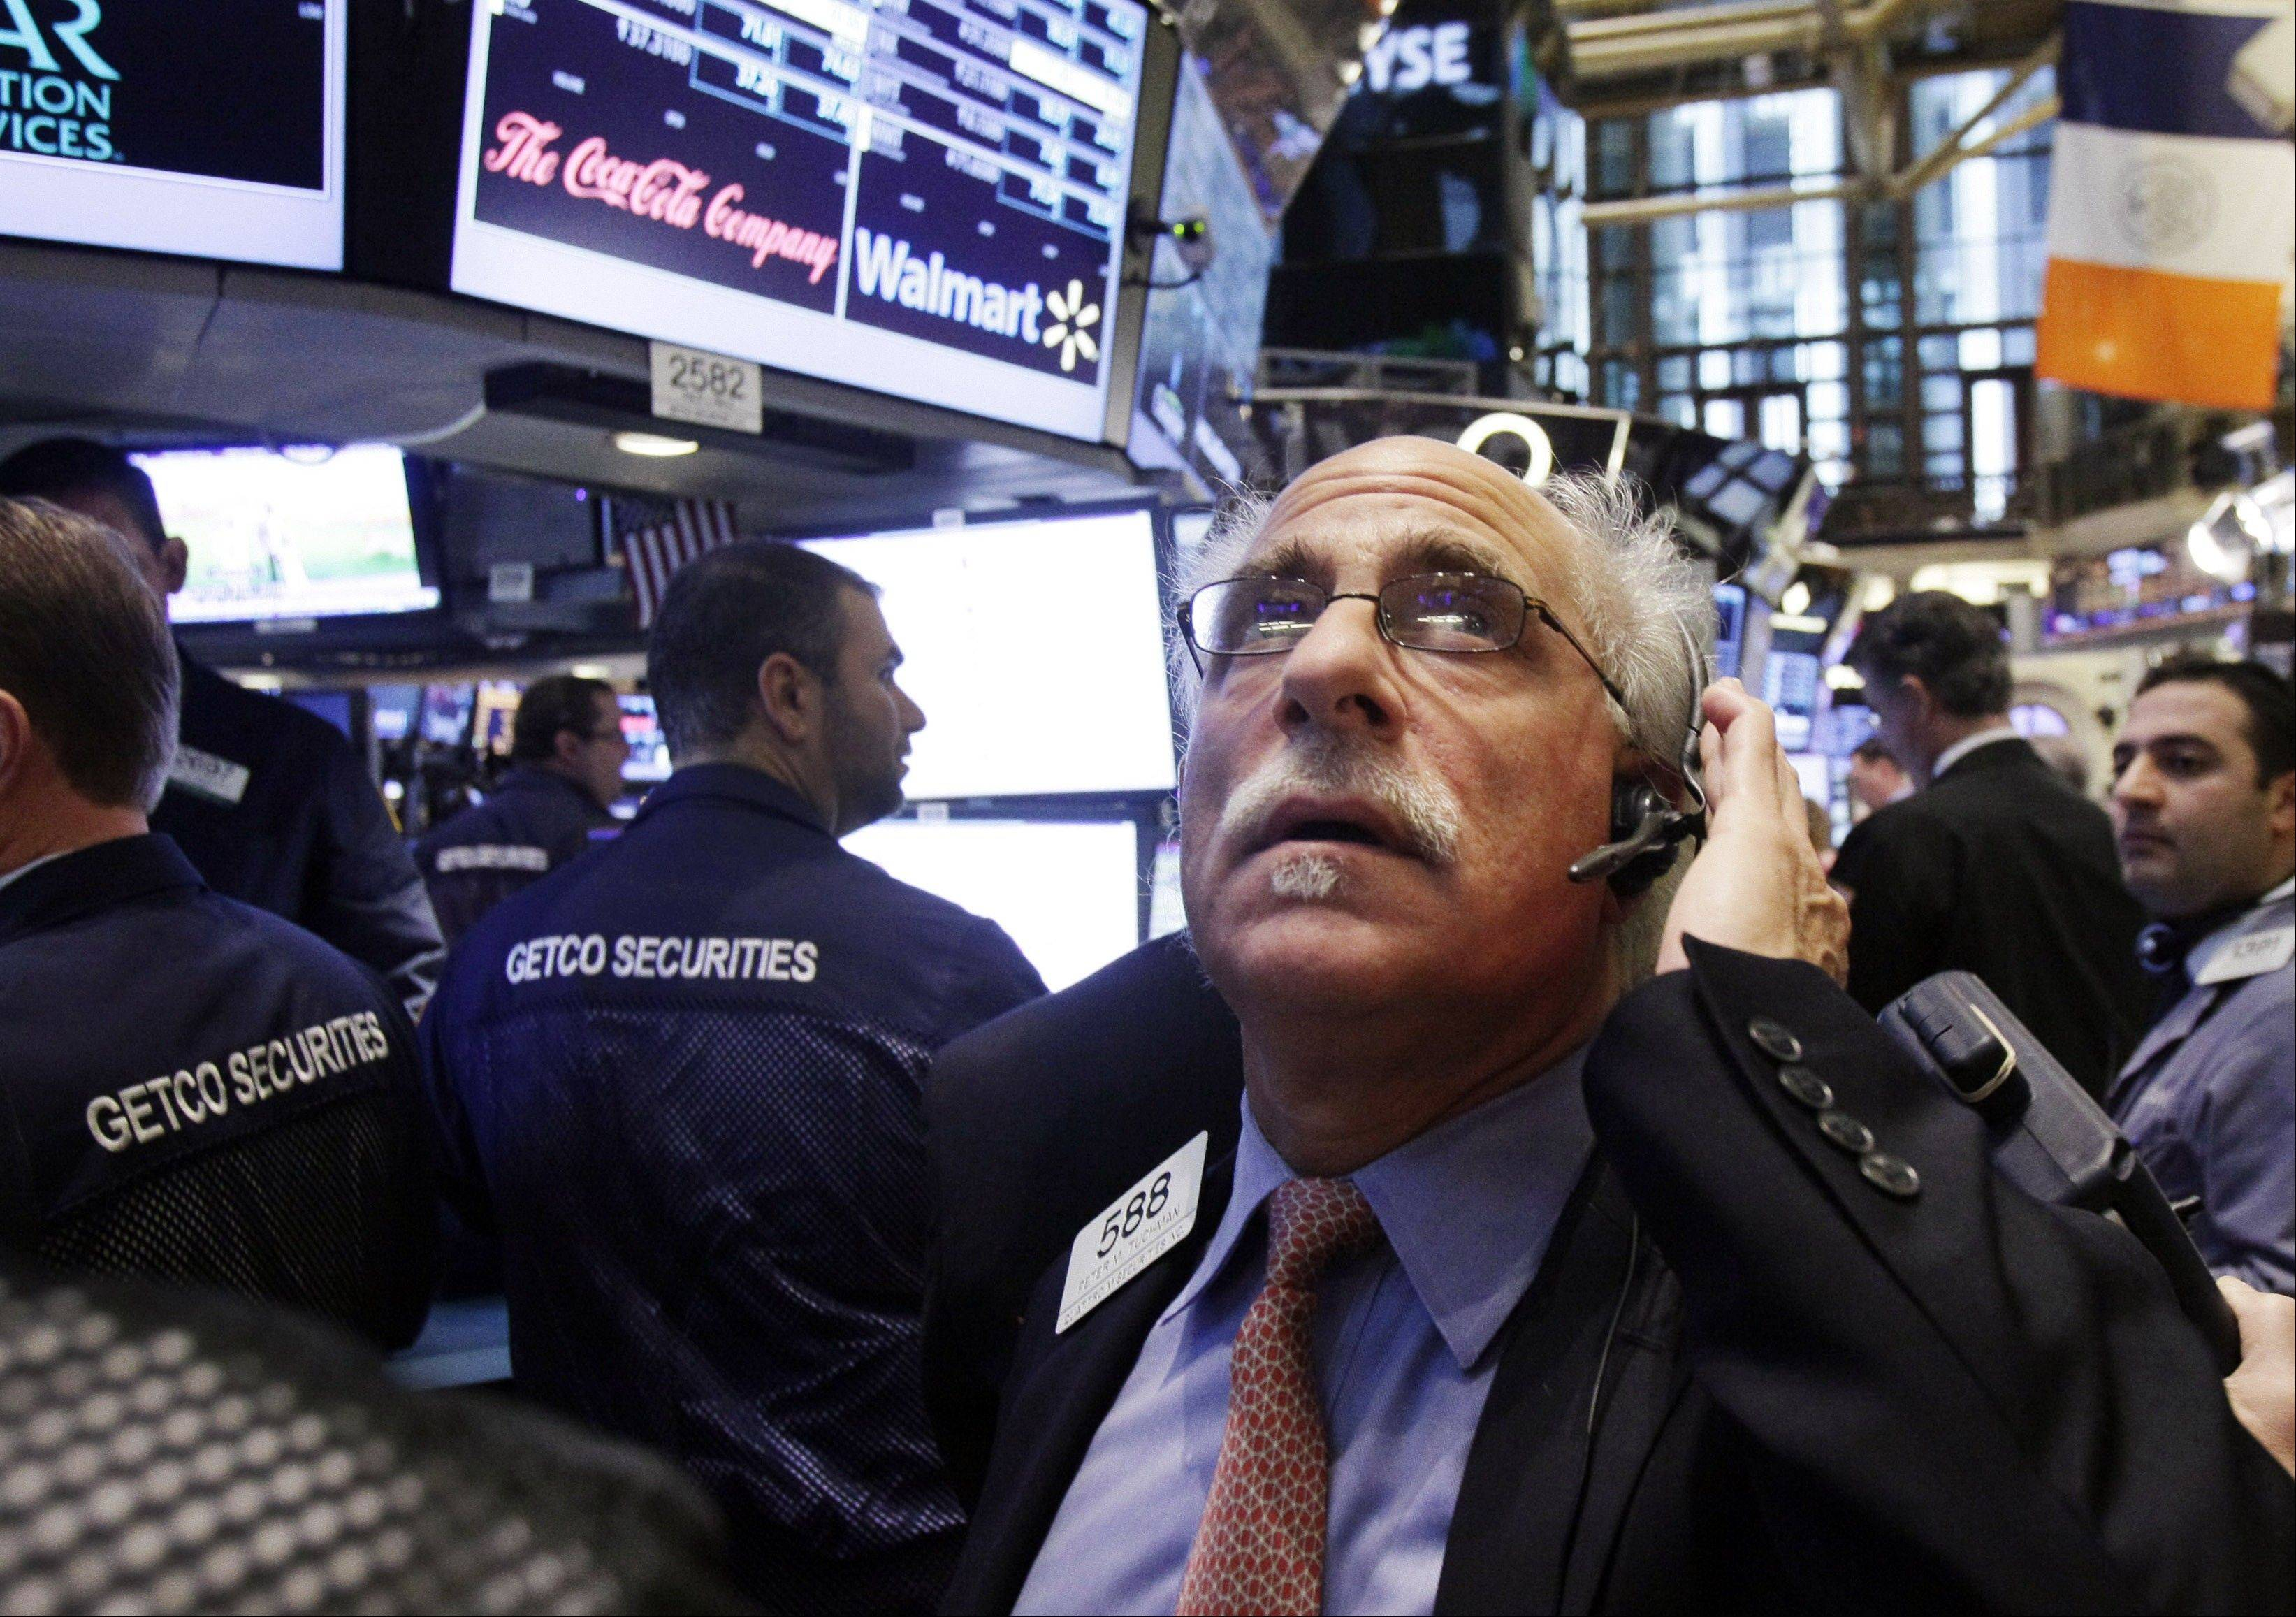 U.S. stocks advanced, after the longest weekly rally in the Standard & Poor�s 500 Index since August, as economic data in China beat estimates and investors watched the latest developments in American budget talks.